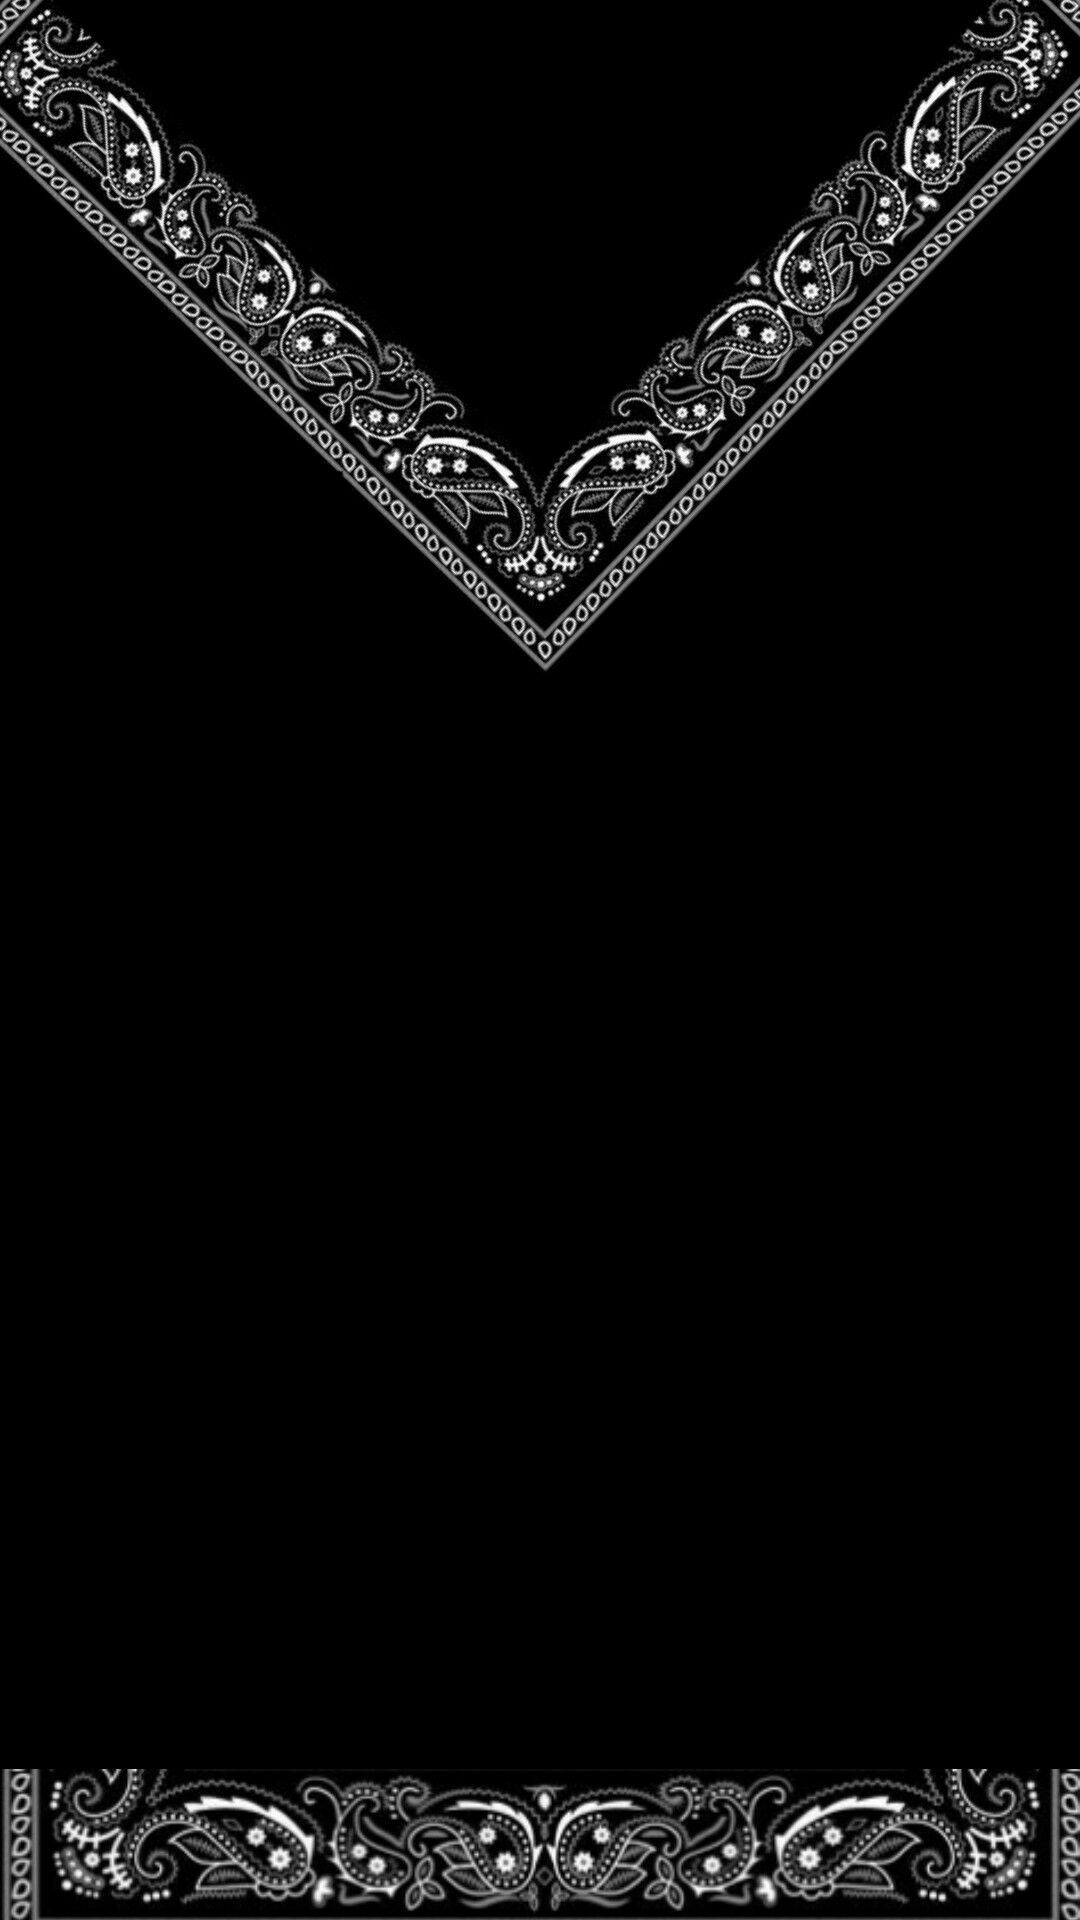 1080x1920 Black Bandana wallpaper. | Wallpaper in 2019 | Hypebeast ...